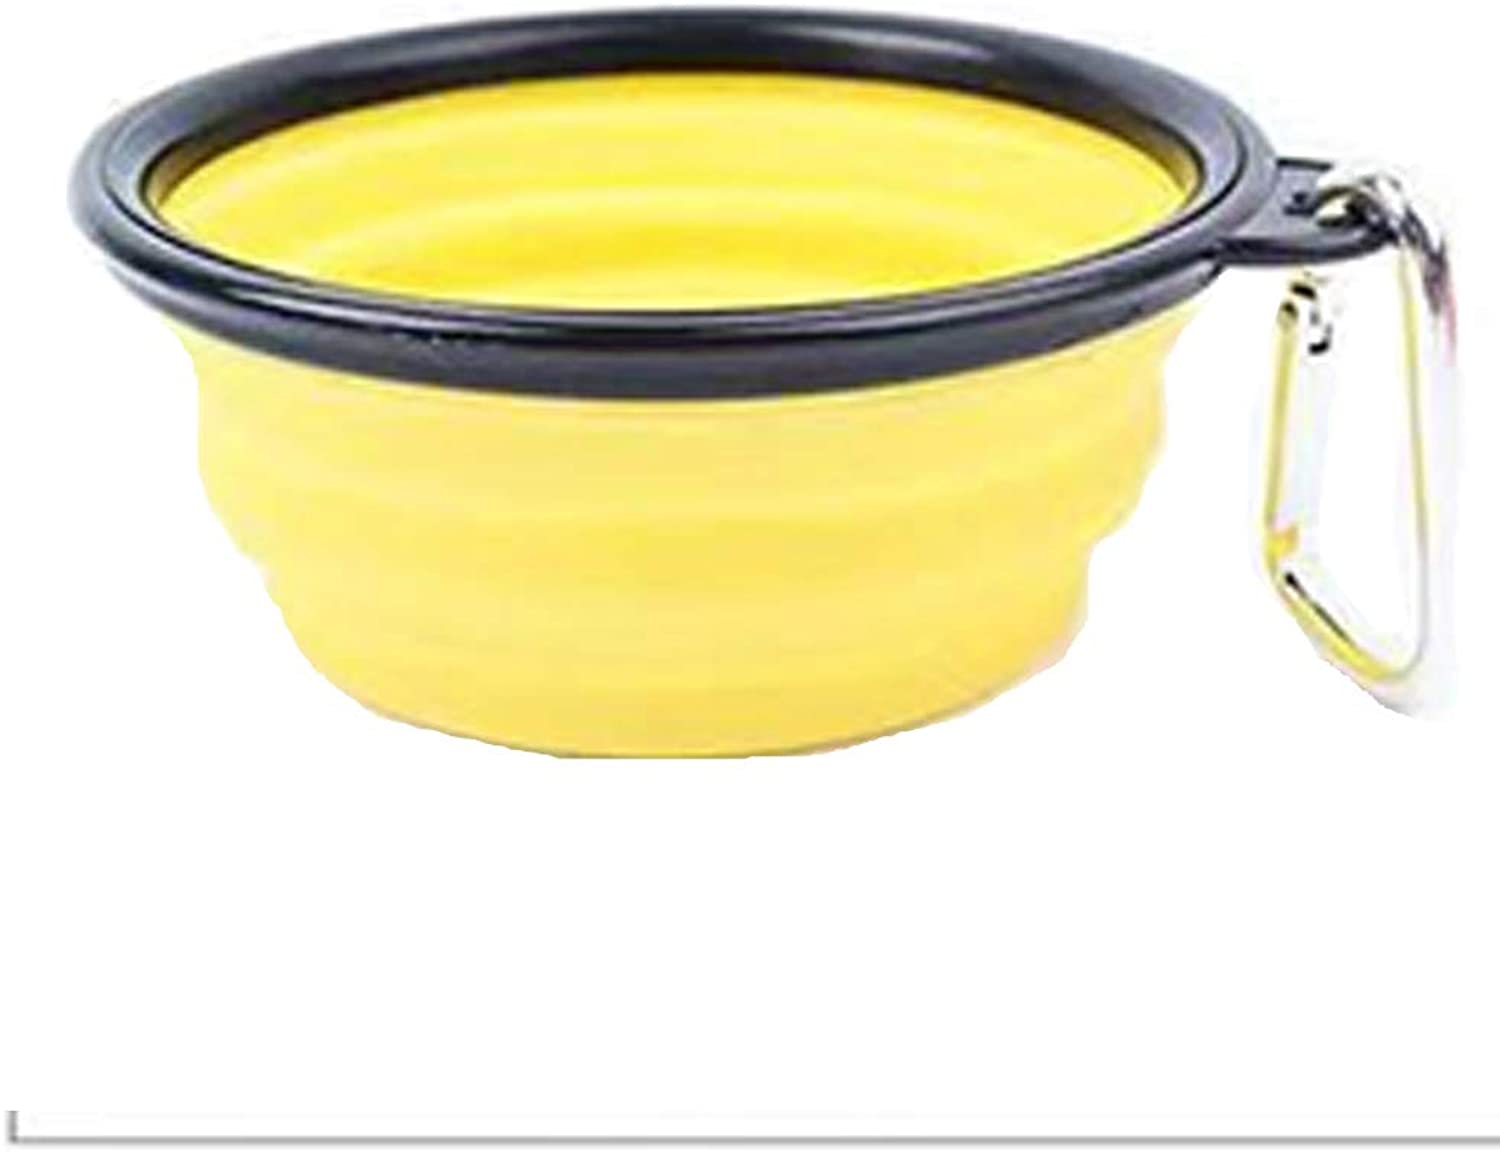 Foldable color Dog Bowl Silicone Folding Silicone Pet Bowl Out Portable Pet Lunch Box Durable NonToxic Safety Health Feeder,Yellow